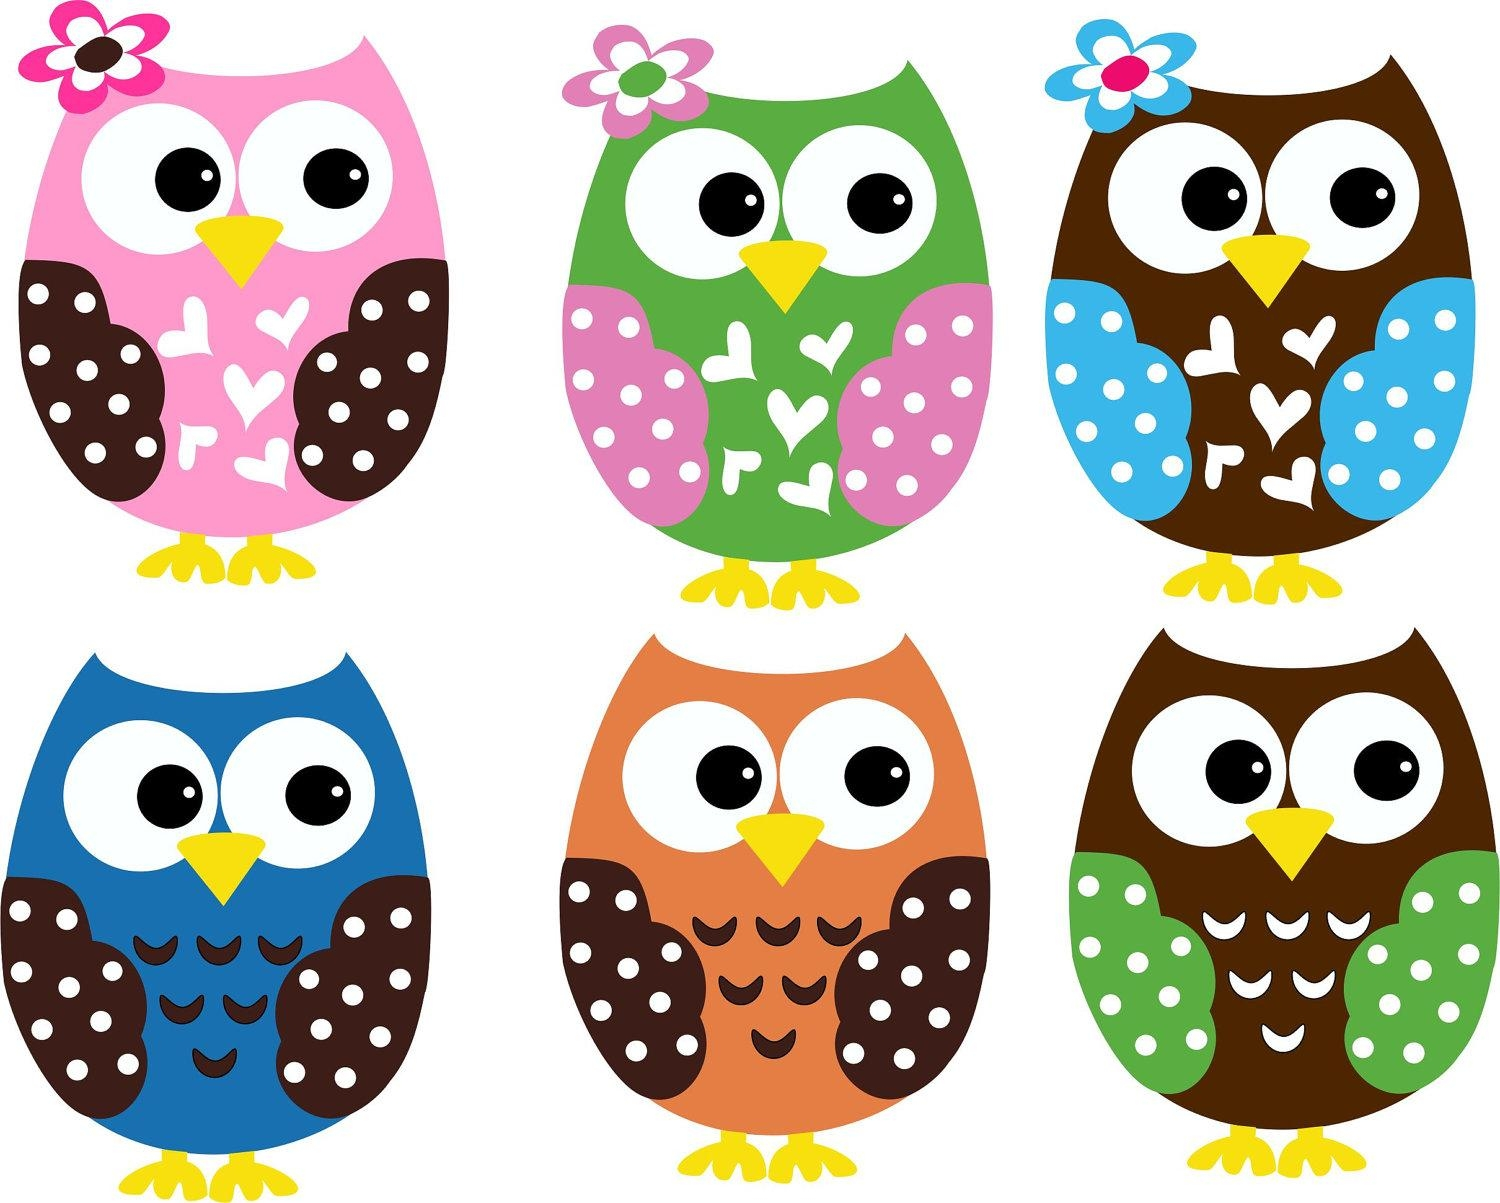 Wall Decals : Trendy Colors Owl Wall Decals 117 Owl Wall Stickers Throughout Kohls Wall Art Decals (Image 13 of 17)